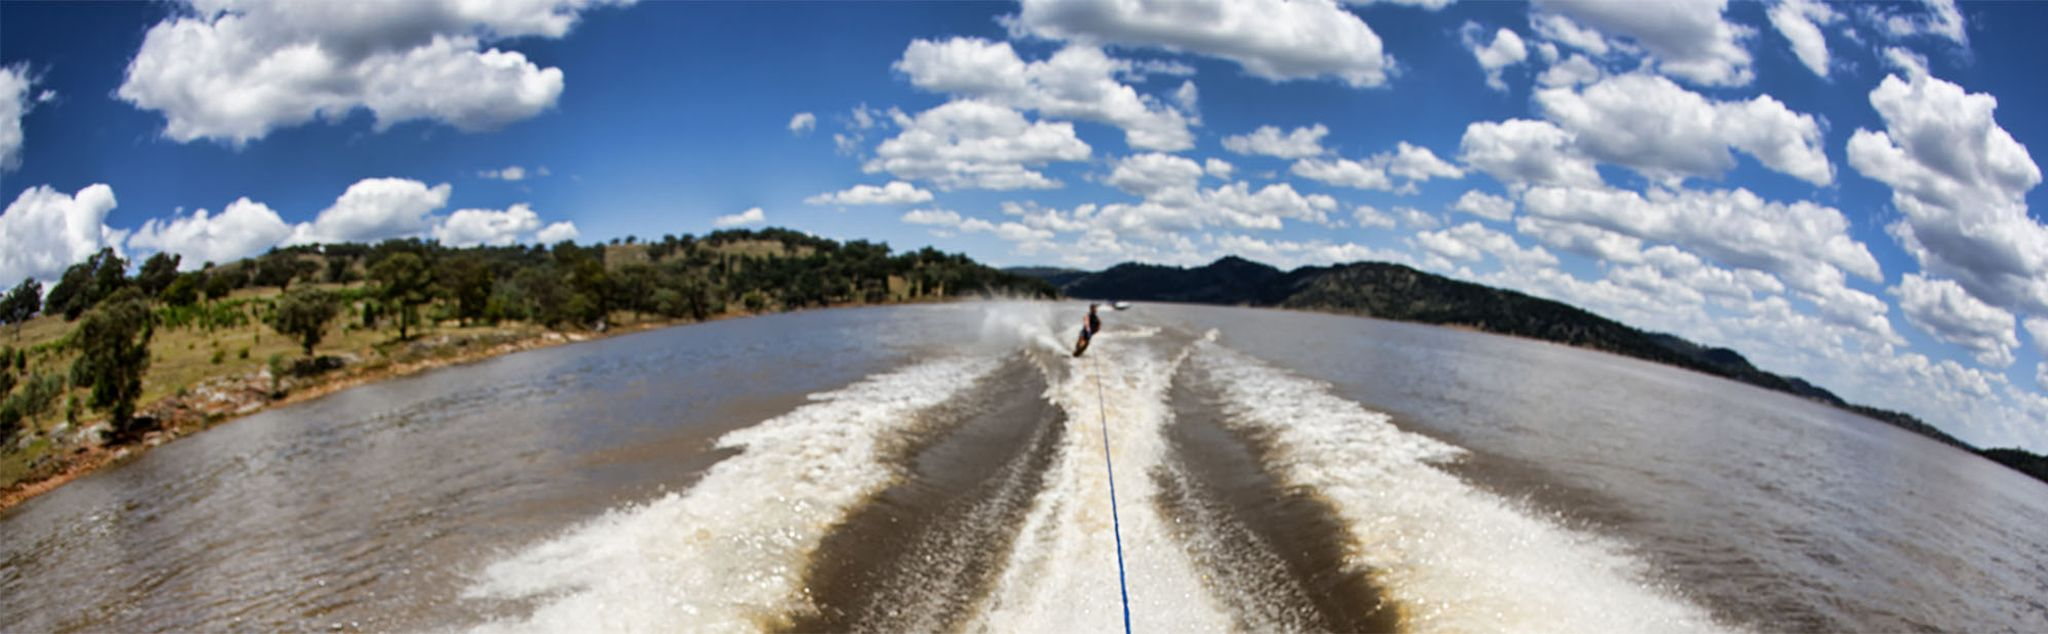 Water Skiing in Ávila